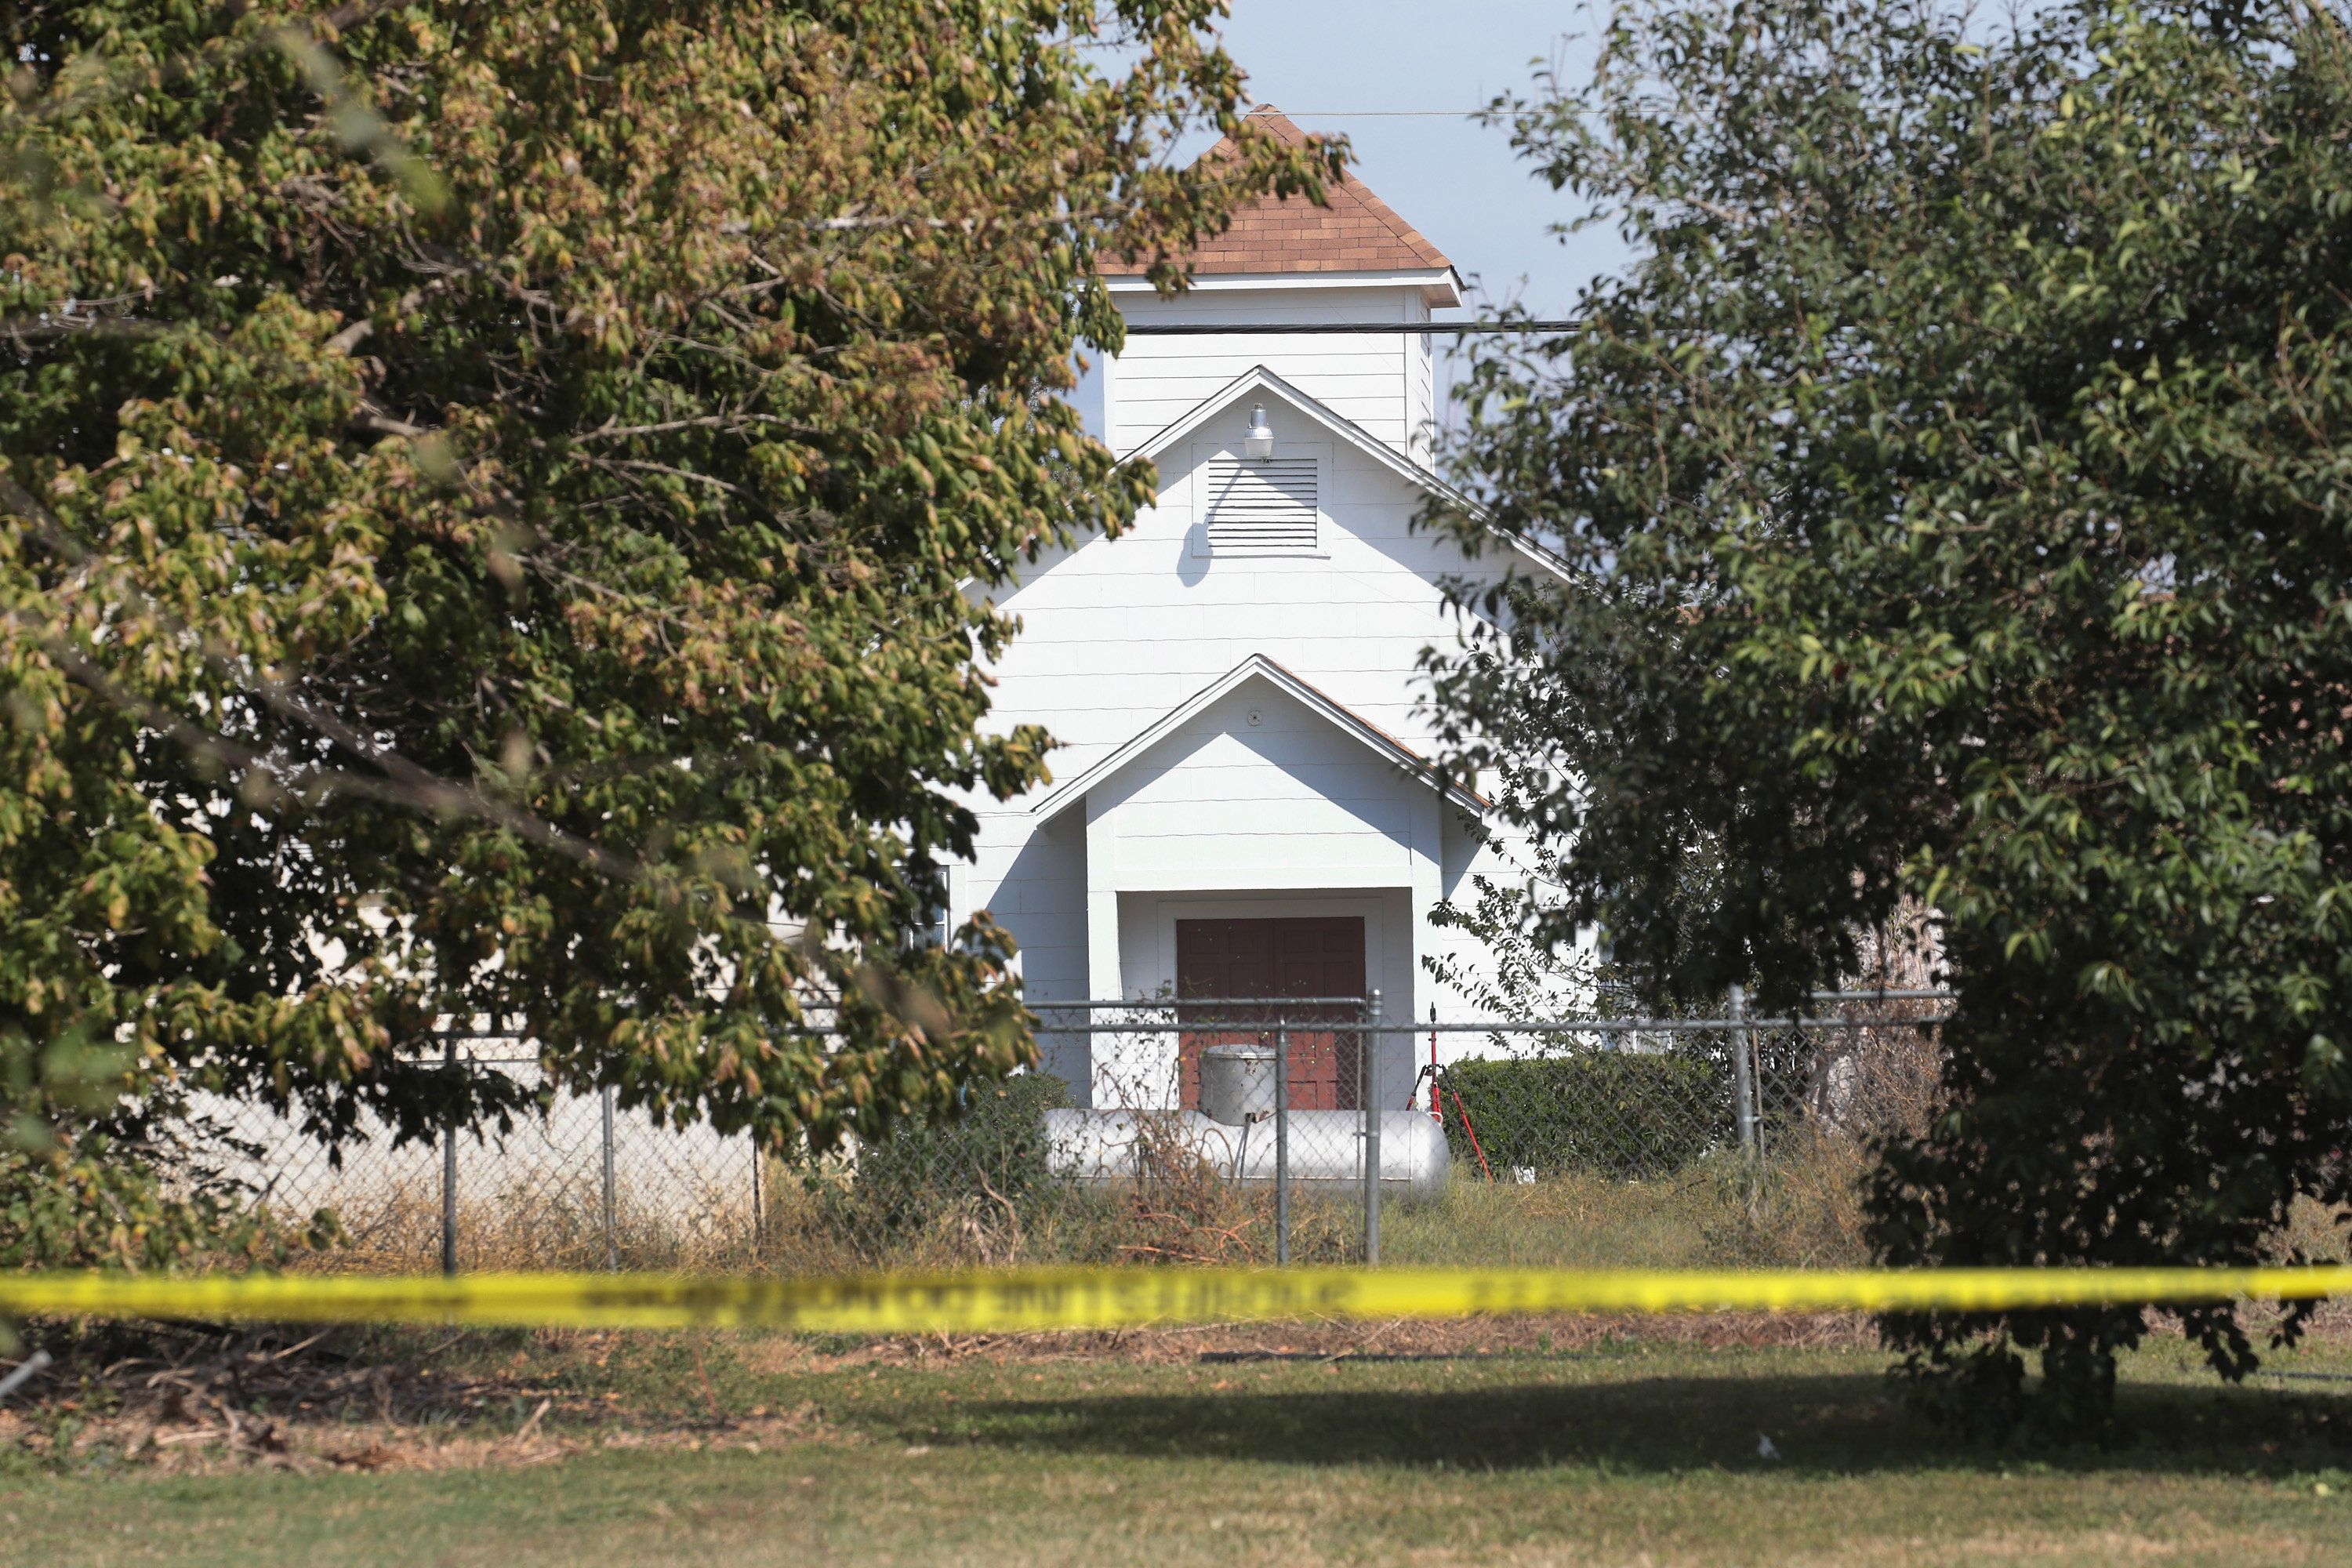 SUTHERLAND SPRINGS, TX - NOVEMBER 07:  Crime scene tape remains stretched along a road near the First Baptist Church of Sutherland Springs on November 7, 2017 in Sutherland Springs, Texas. On November 5 a gunman, Devin Patrick Kelley, killed 26 people at the church and wounded 20 more when he opened fire during a Sunday service.  (Photo by Scott Olson/Getty Images)